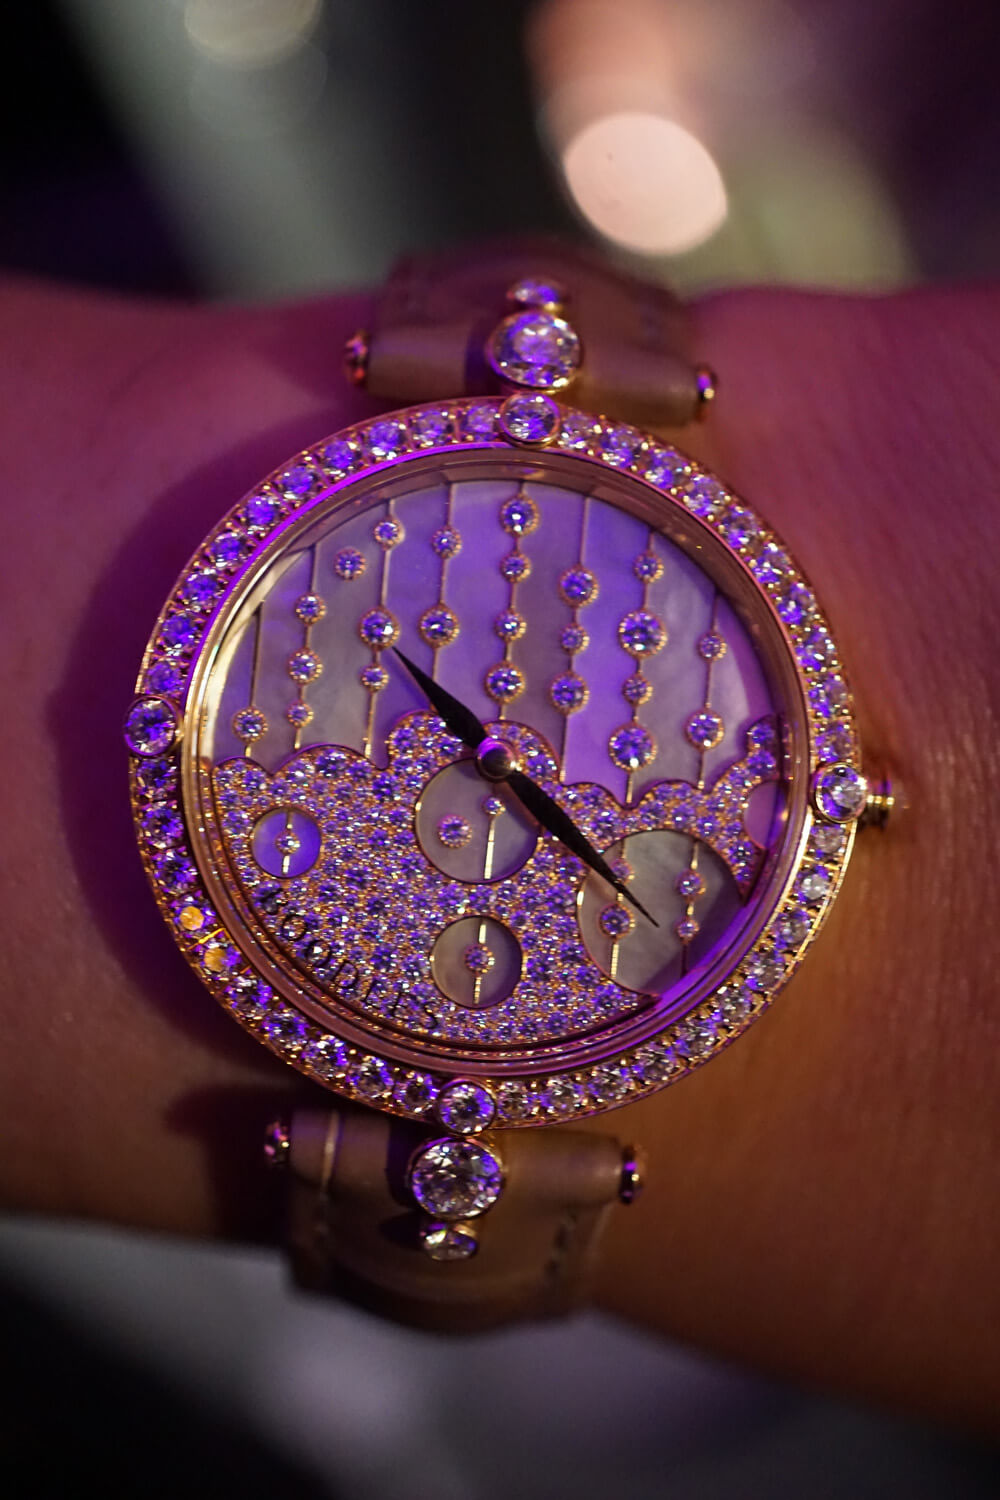 Boodles Raindance Watch featuring a quartz movement and gem set dial and case